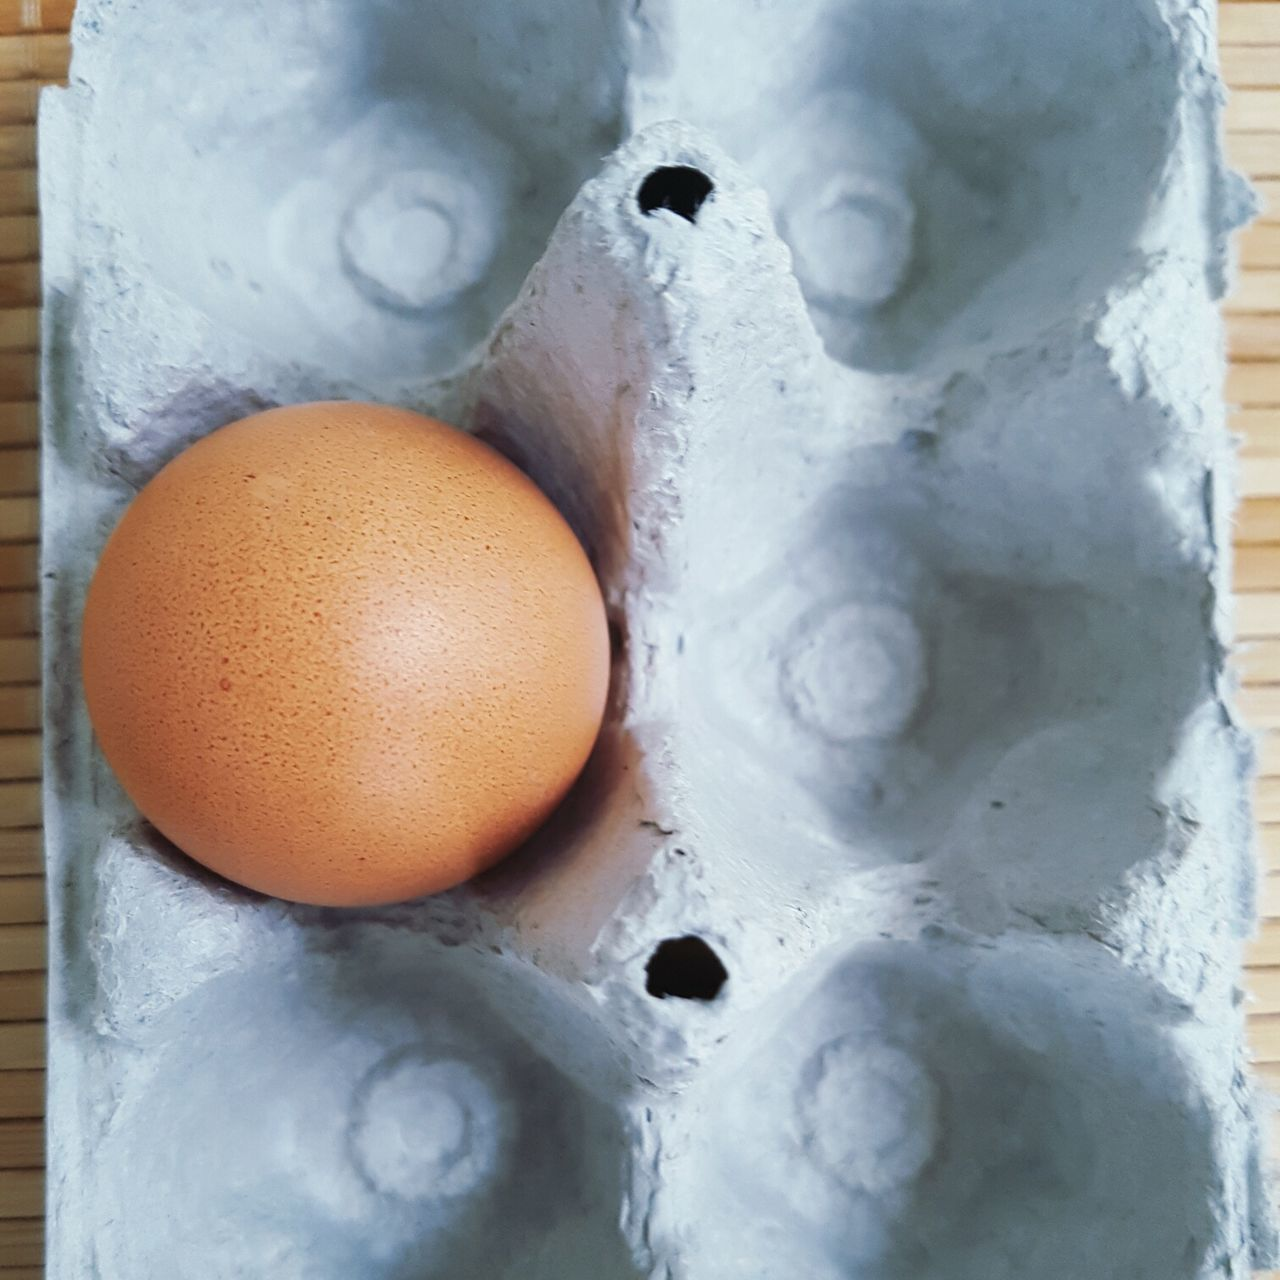 egg, close-up, no people, egg carton, food and drink, indoors, food, egg yolk, healthy eating, freshness, fragility, day